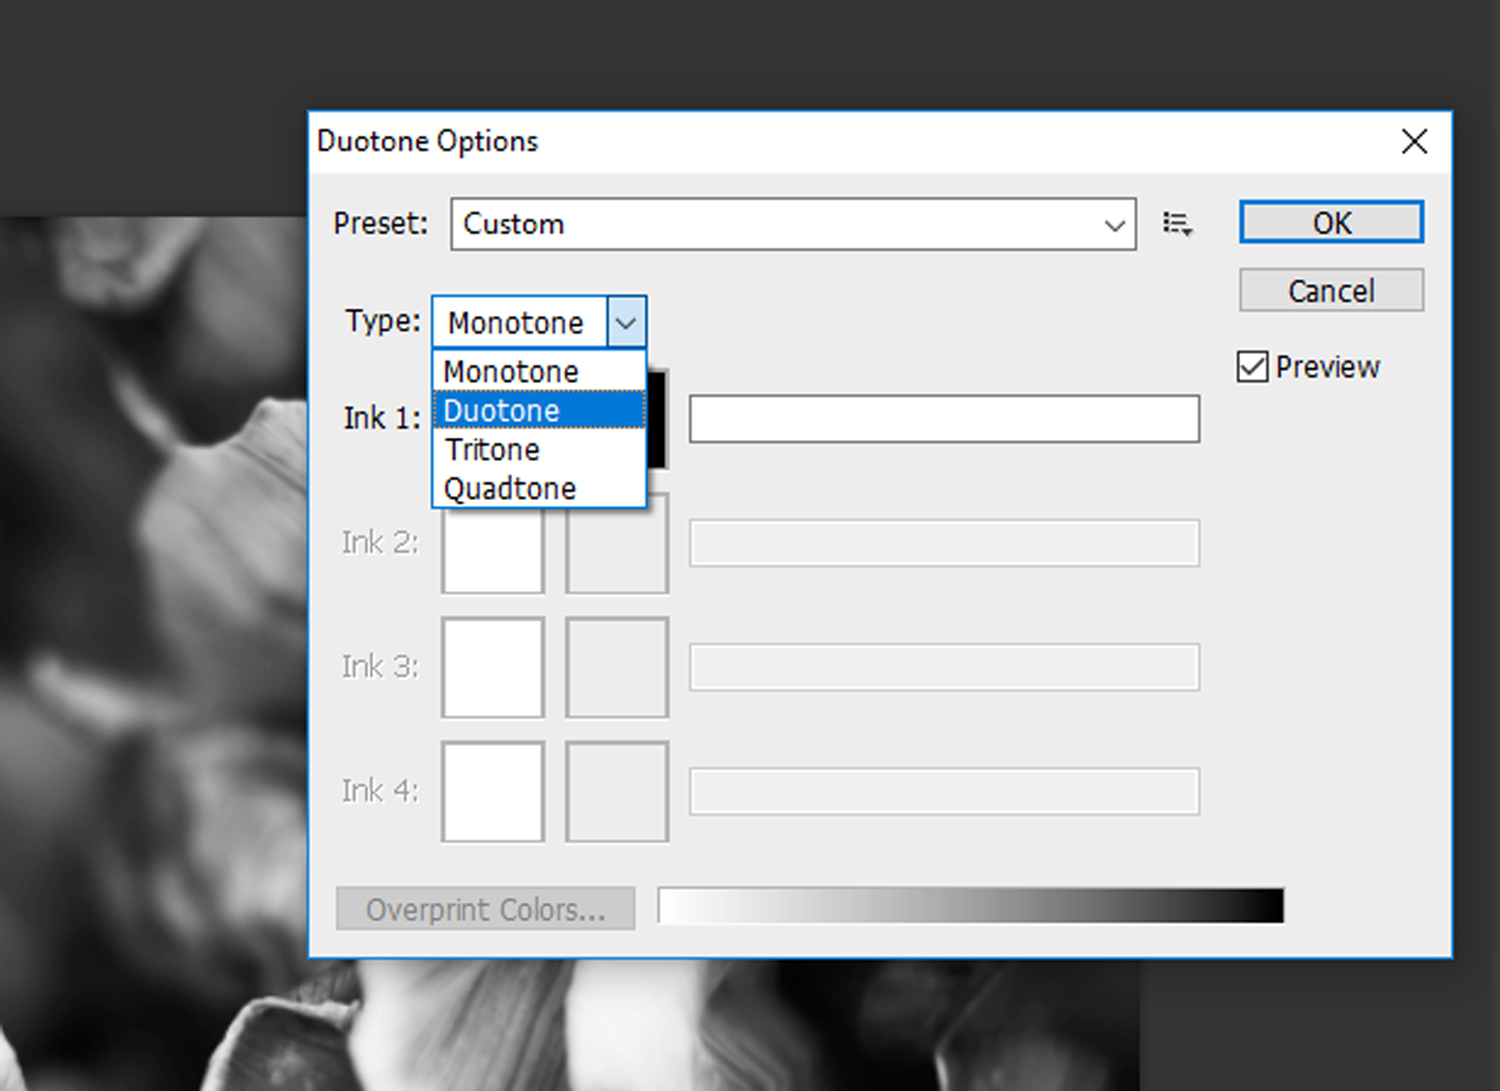 8 - How to Duotone a Photograph in Photoshop